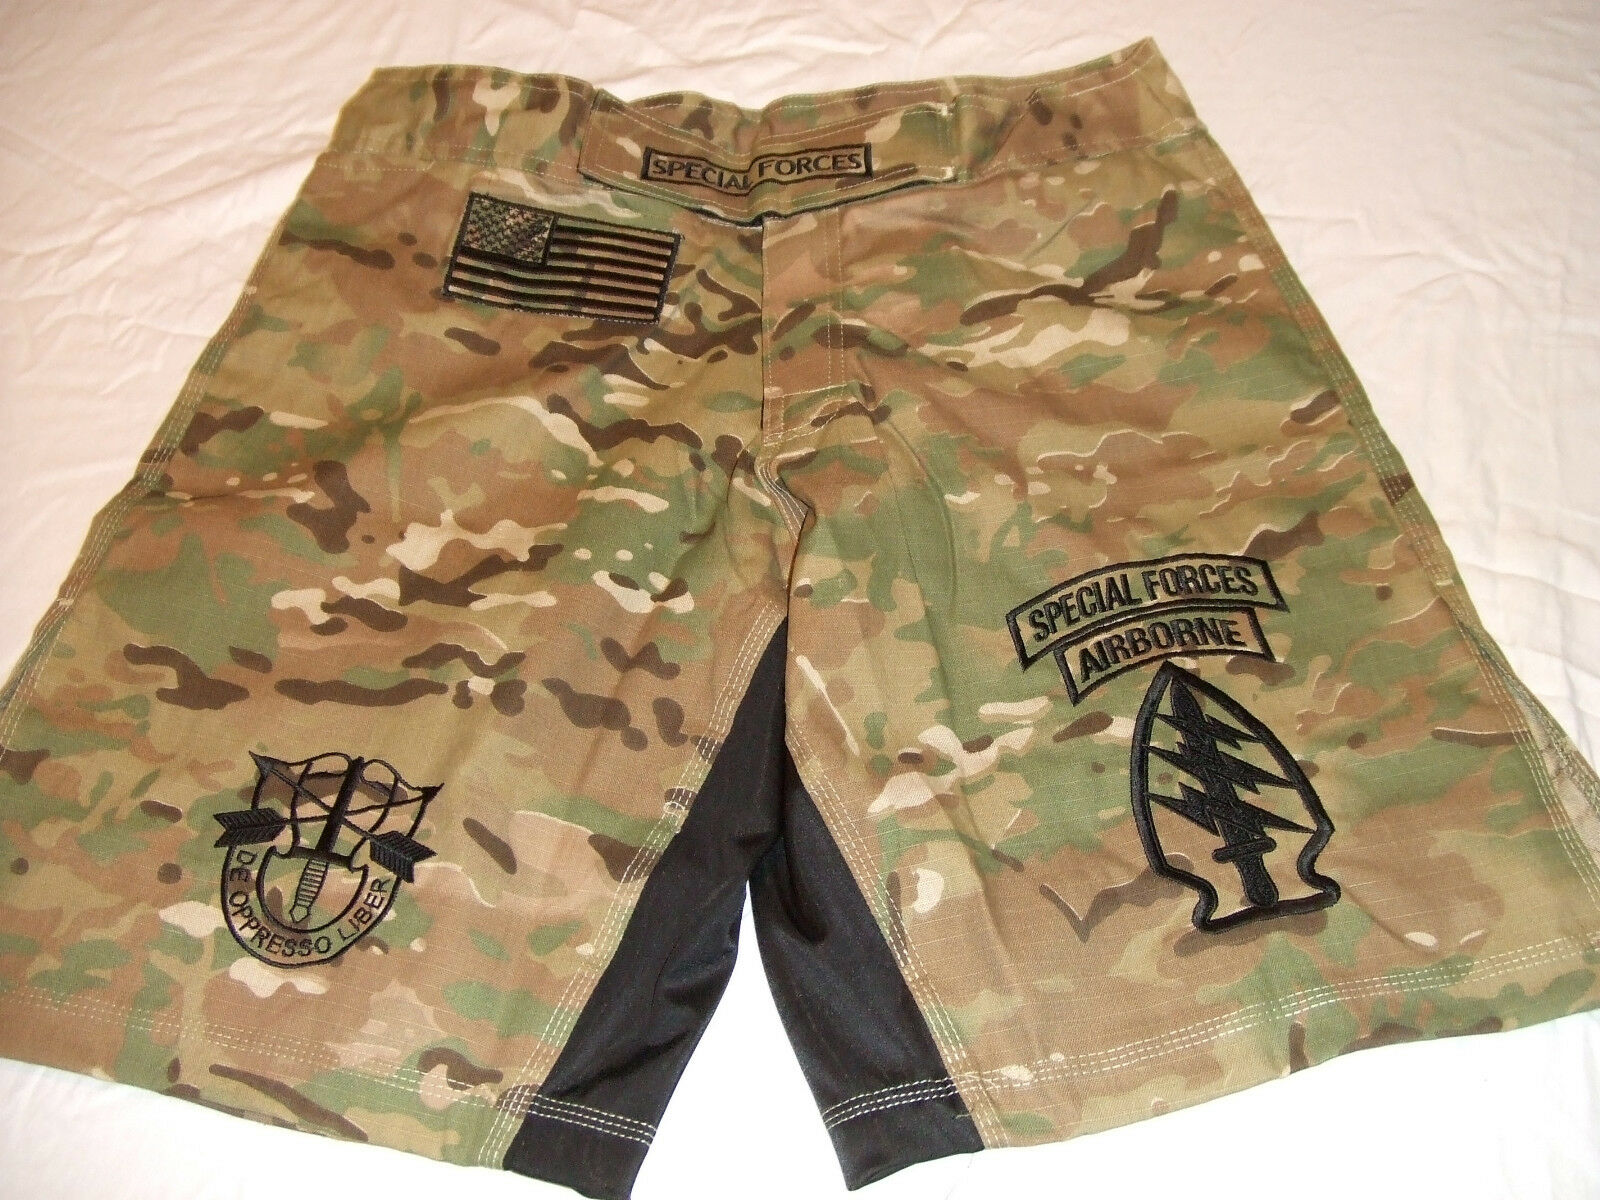 ae0addfa8f US ARMY SPECIAL FORCES SF COMBATANT MMA PT FIGHT NEW CAMO BOARD SHORTS 4XL-  5XL